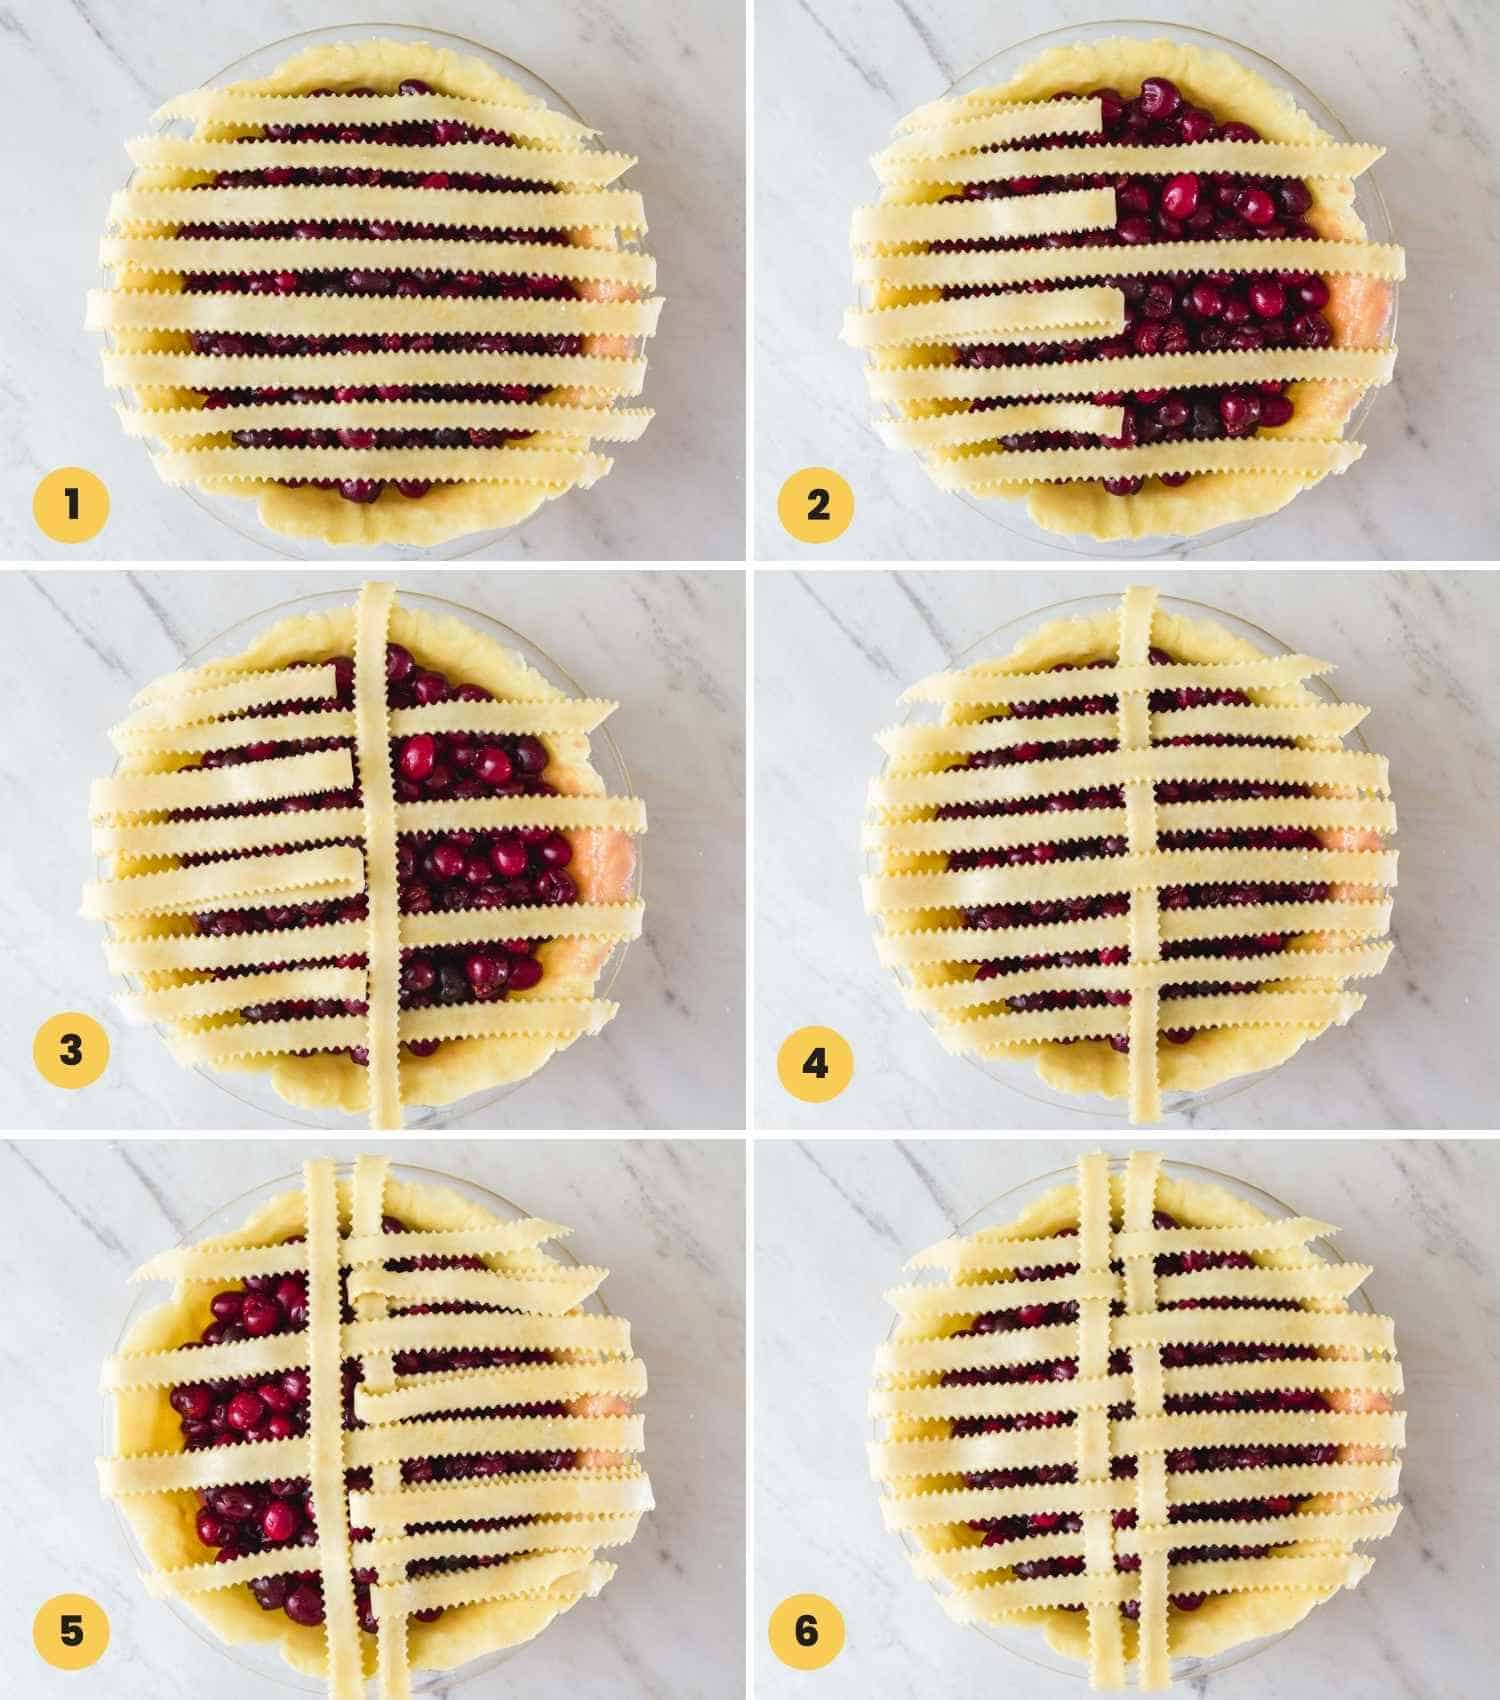 A collage with 6 images on how to lattice a pie crust